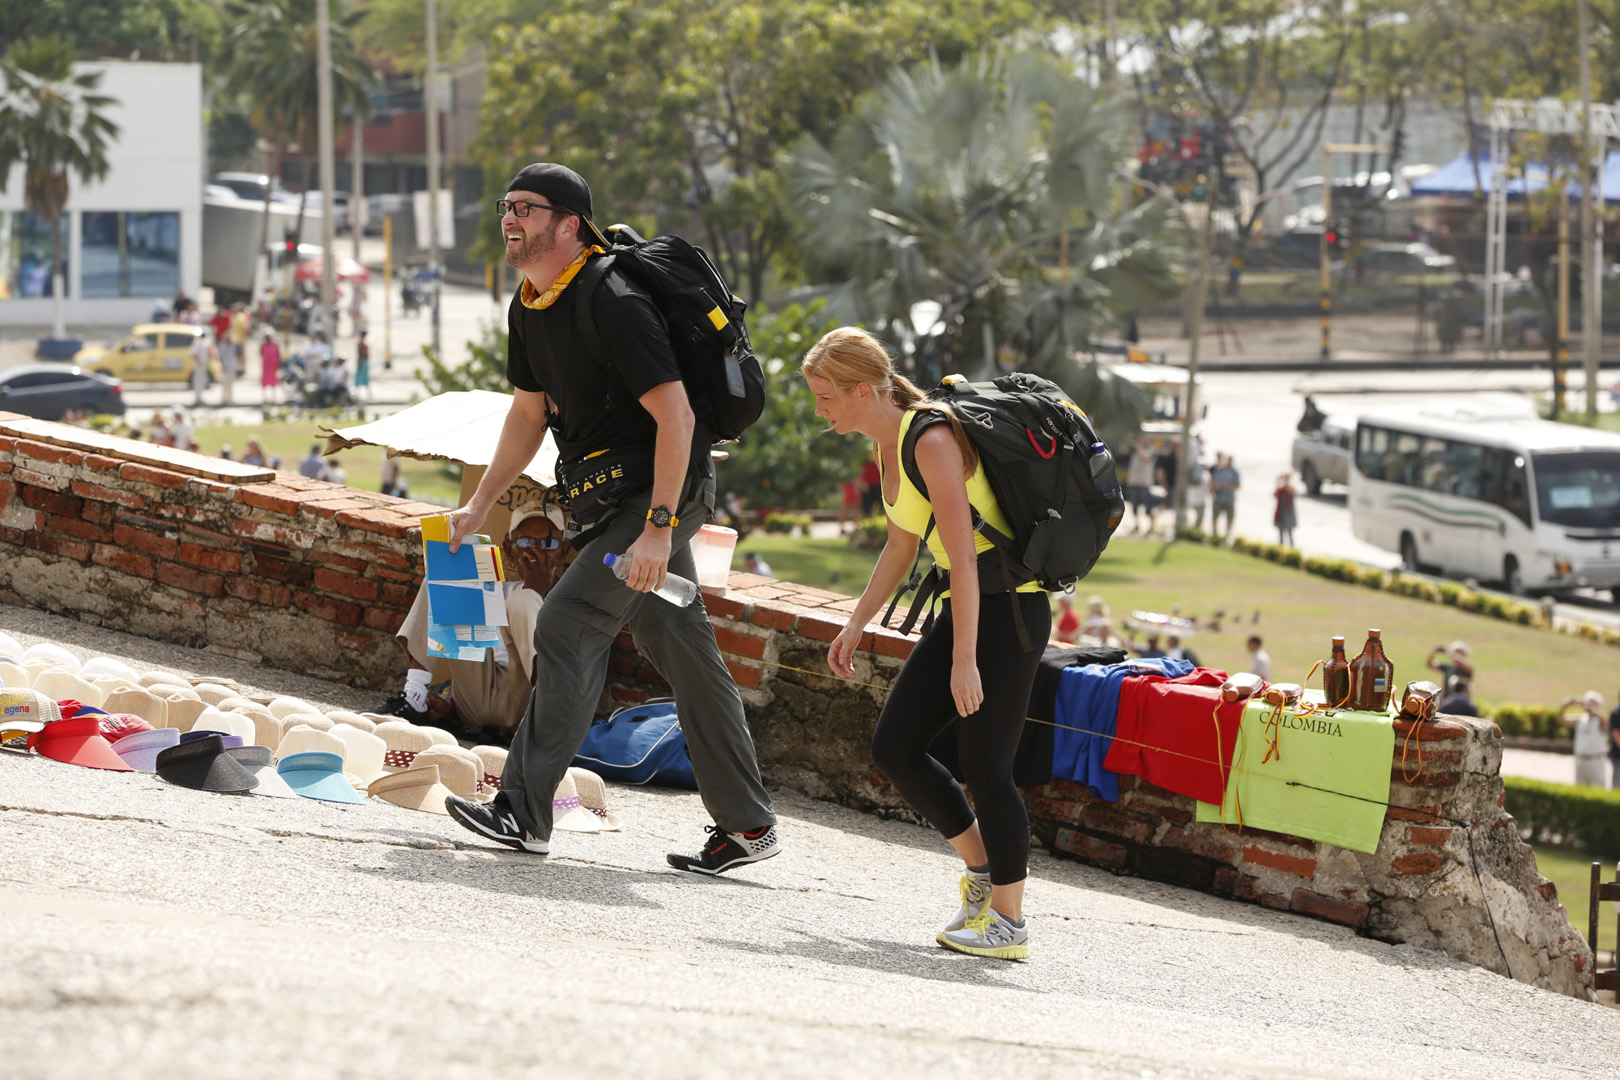 8. If given the chance, would you return for another season of The Amazing Race?